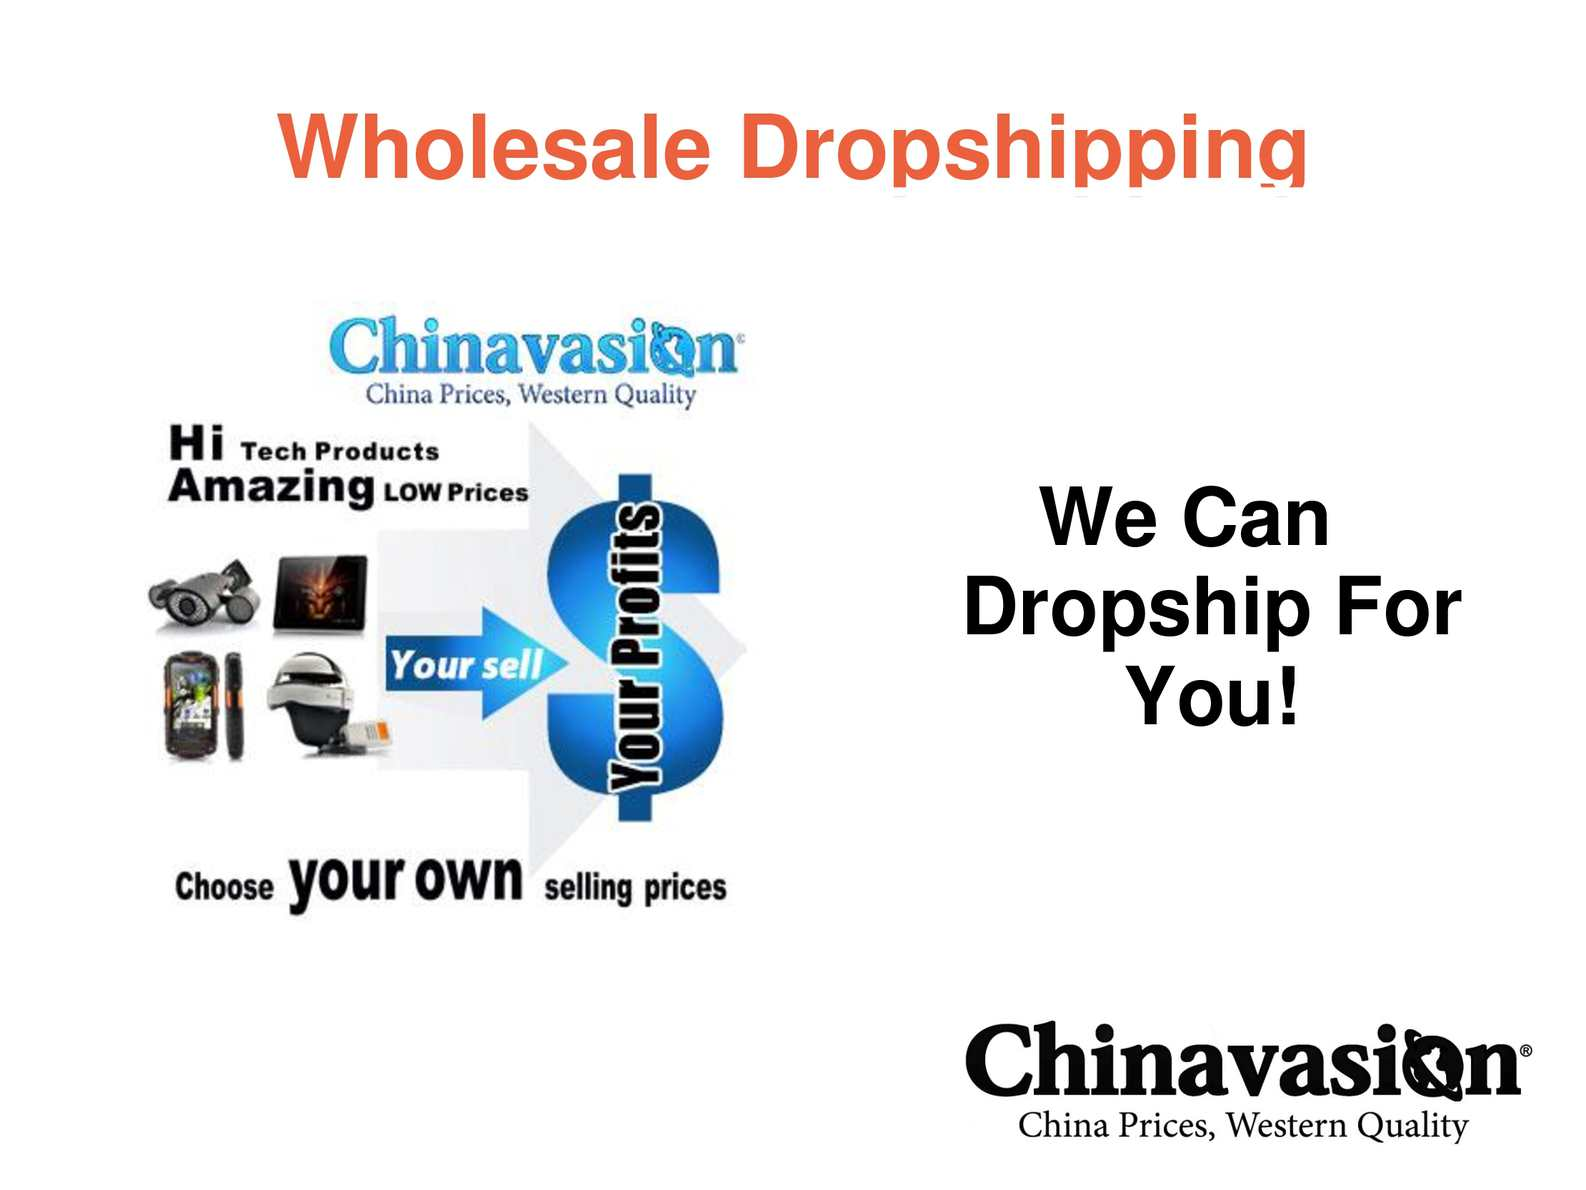 Chinese Wholesale Dropshippers